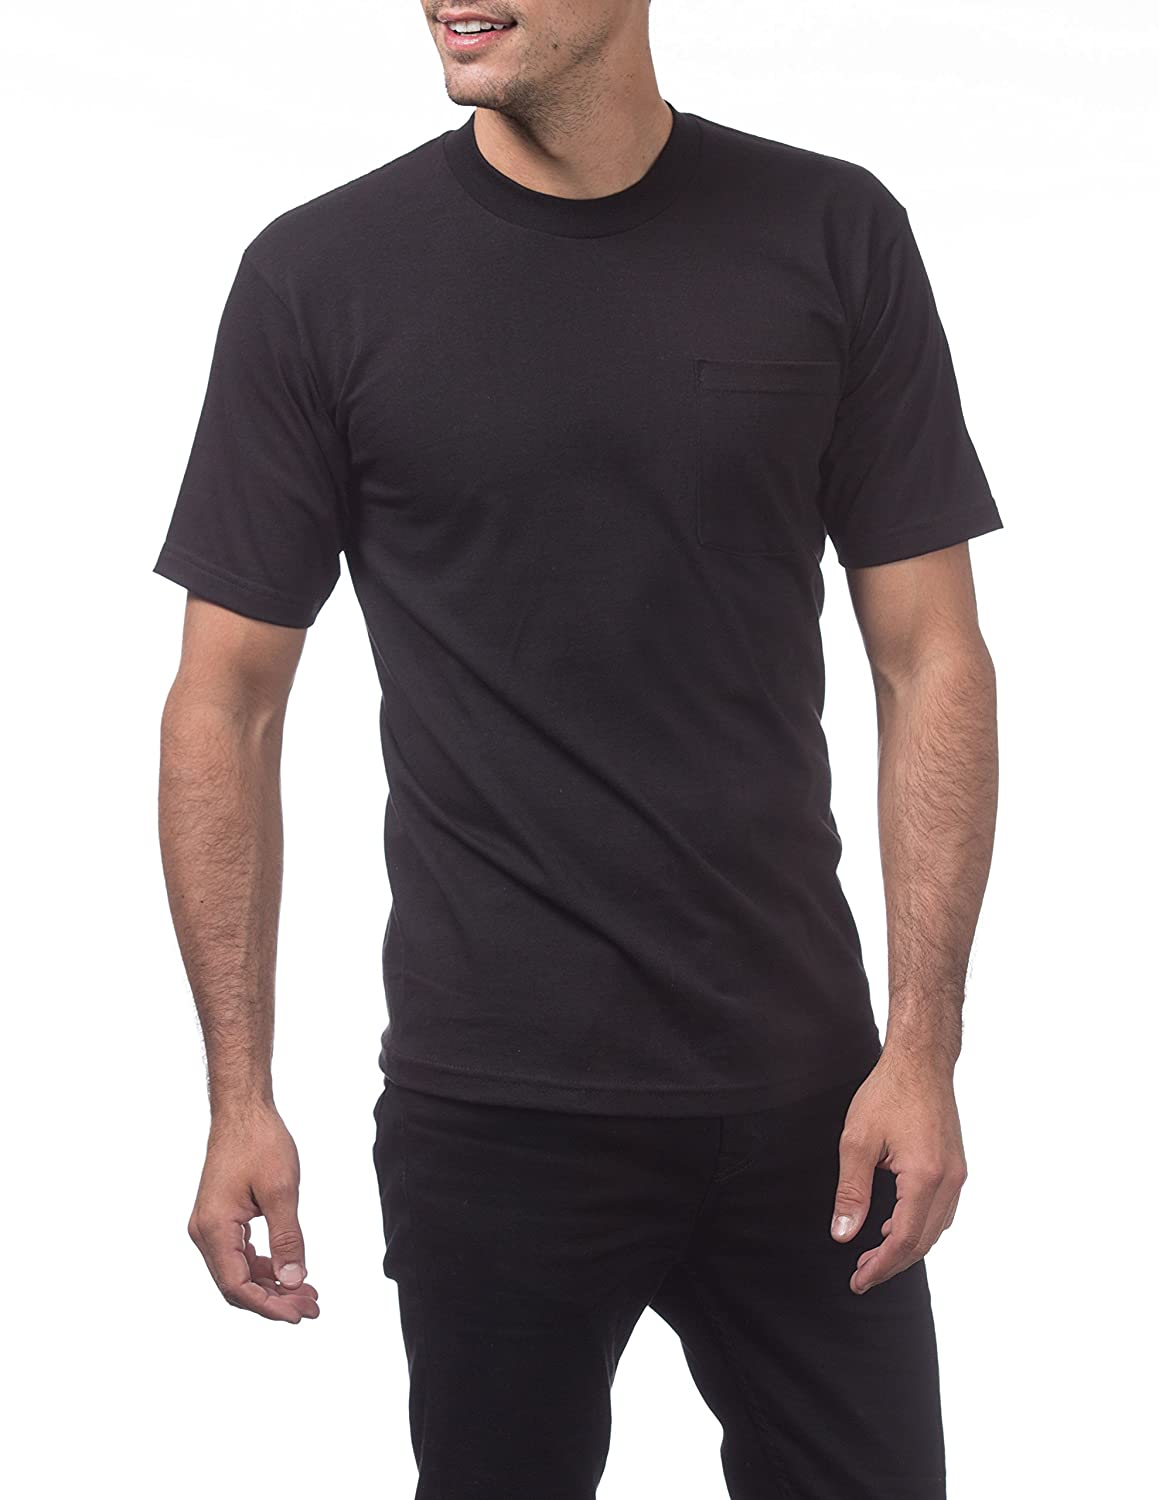 a584d6ca9c3 Pro Club Men s Heavyweight Cotton Short Sleeve Pocket T-Shirt at Amazon Men s  Clothing store